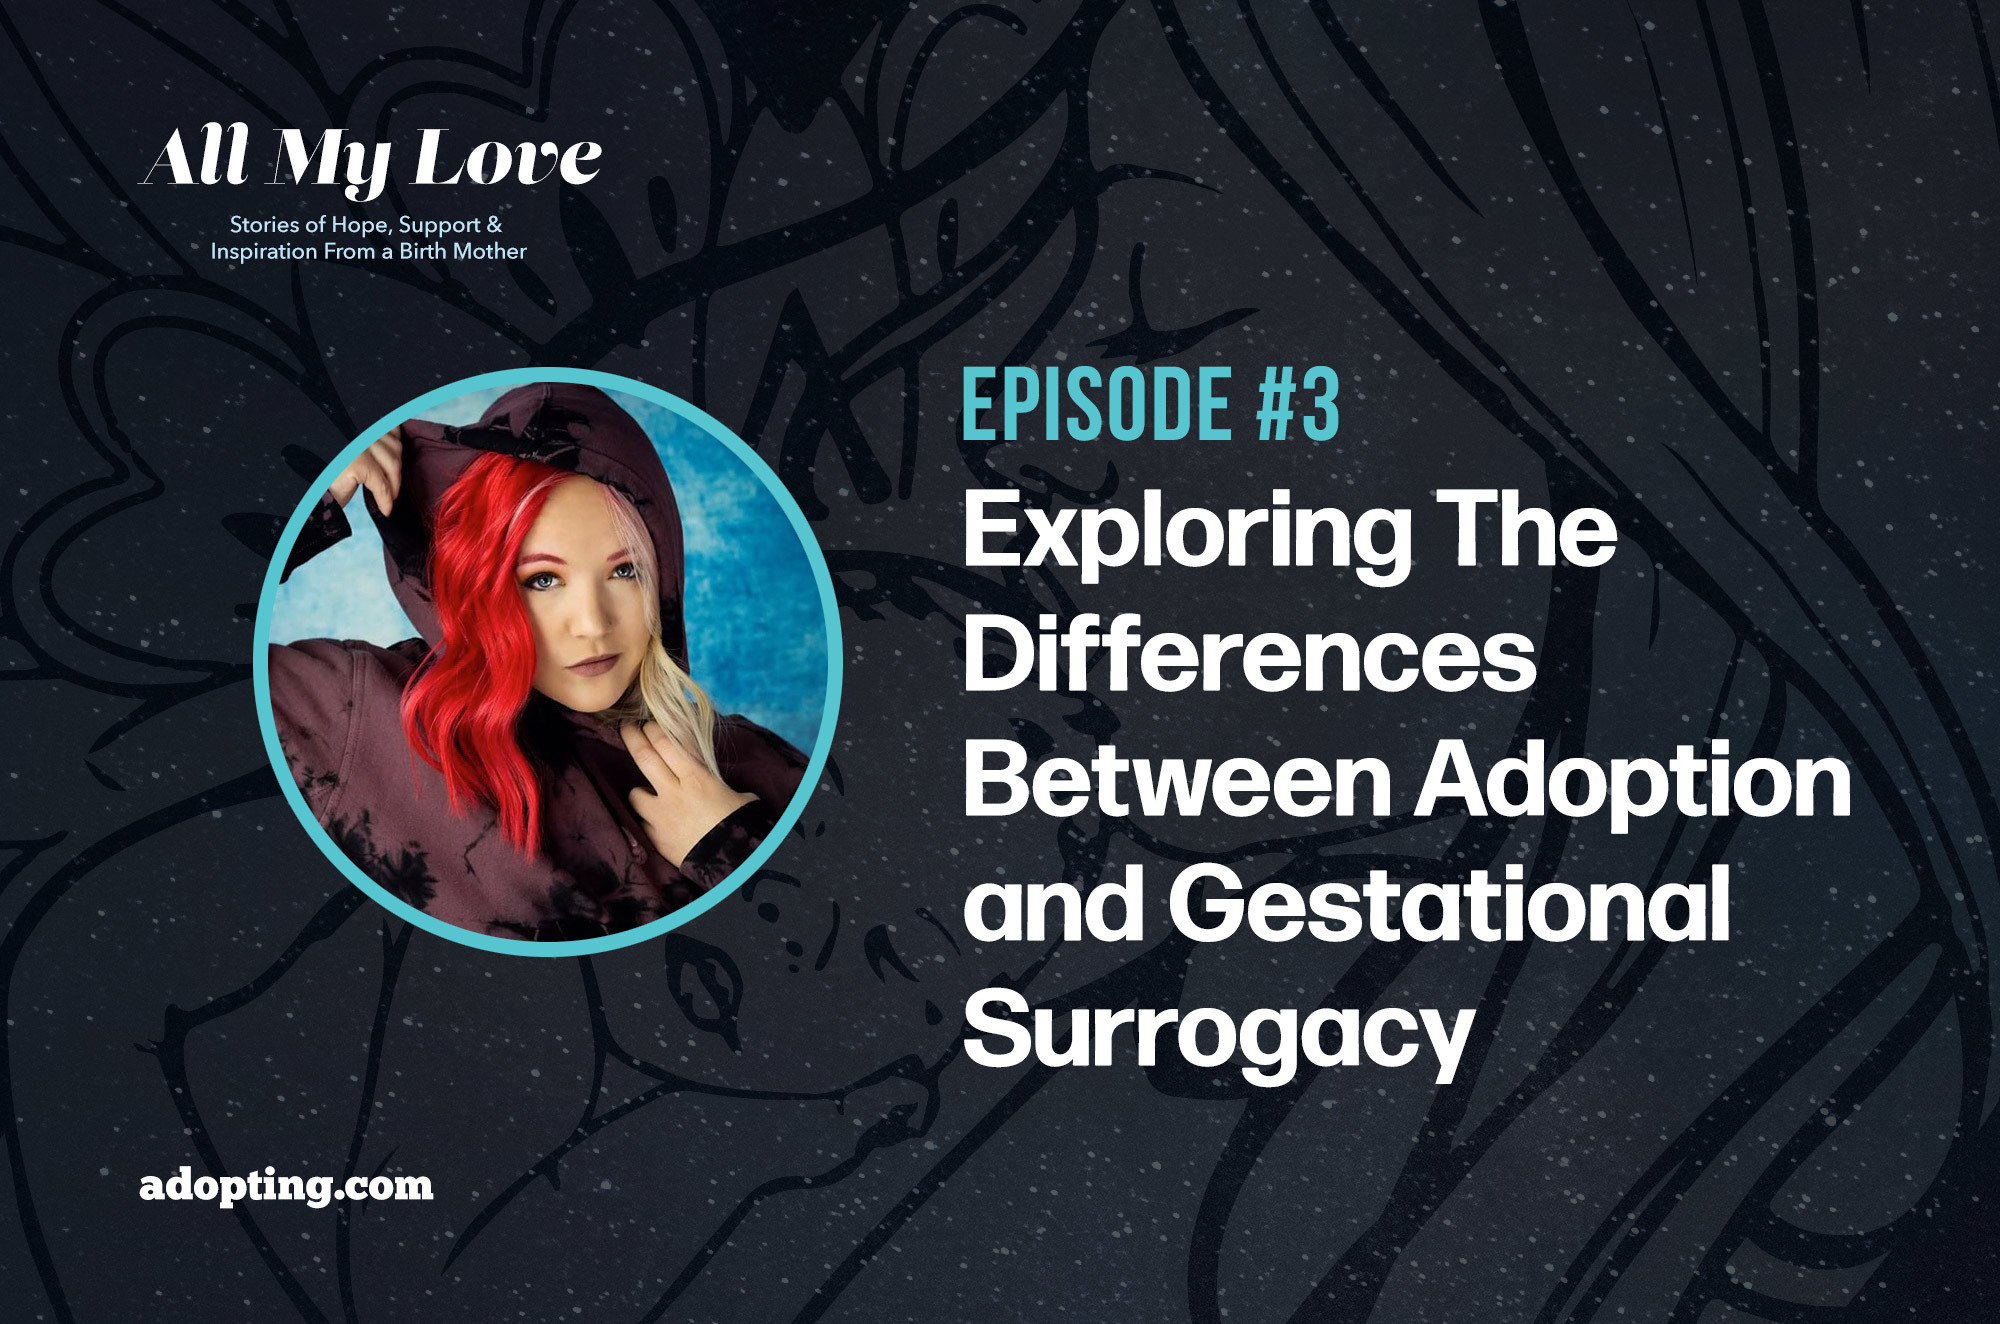 Differences between adoption and surrogacy